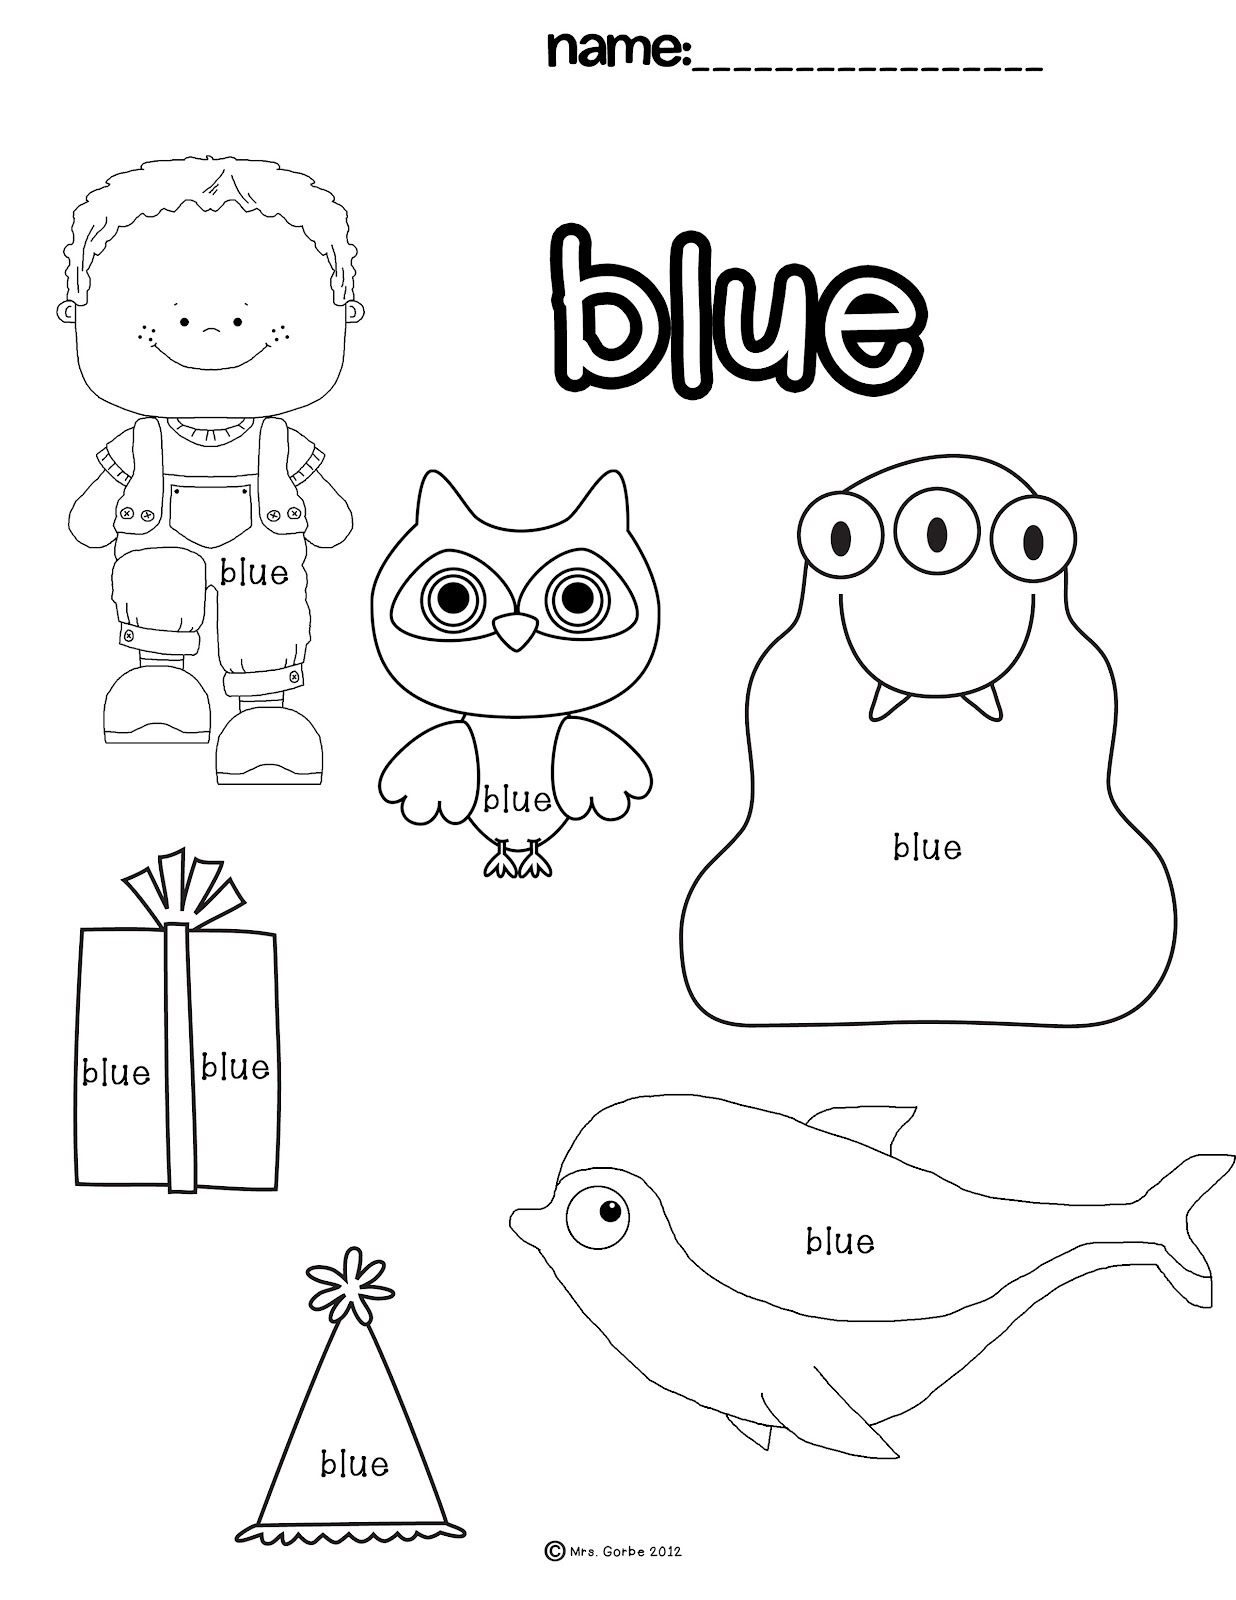 Color Blue Worksheets Preschool Sketch Coloring Page